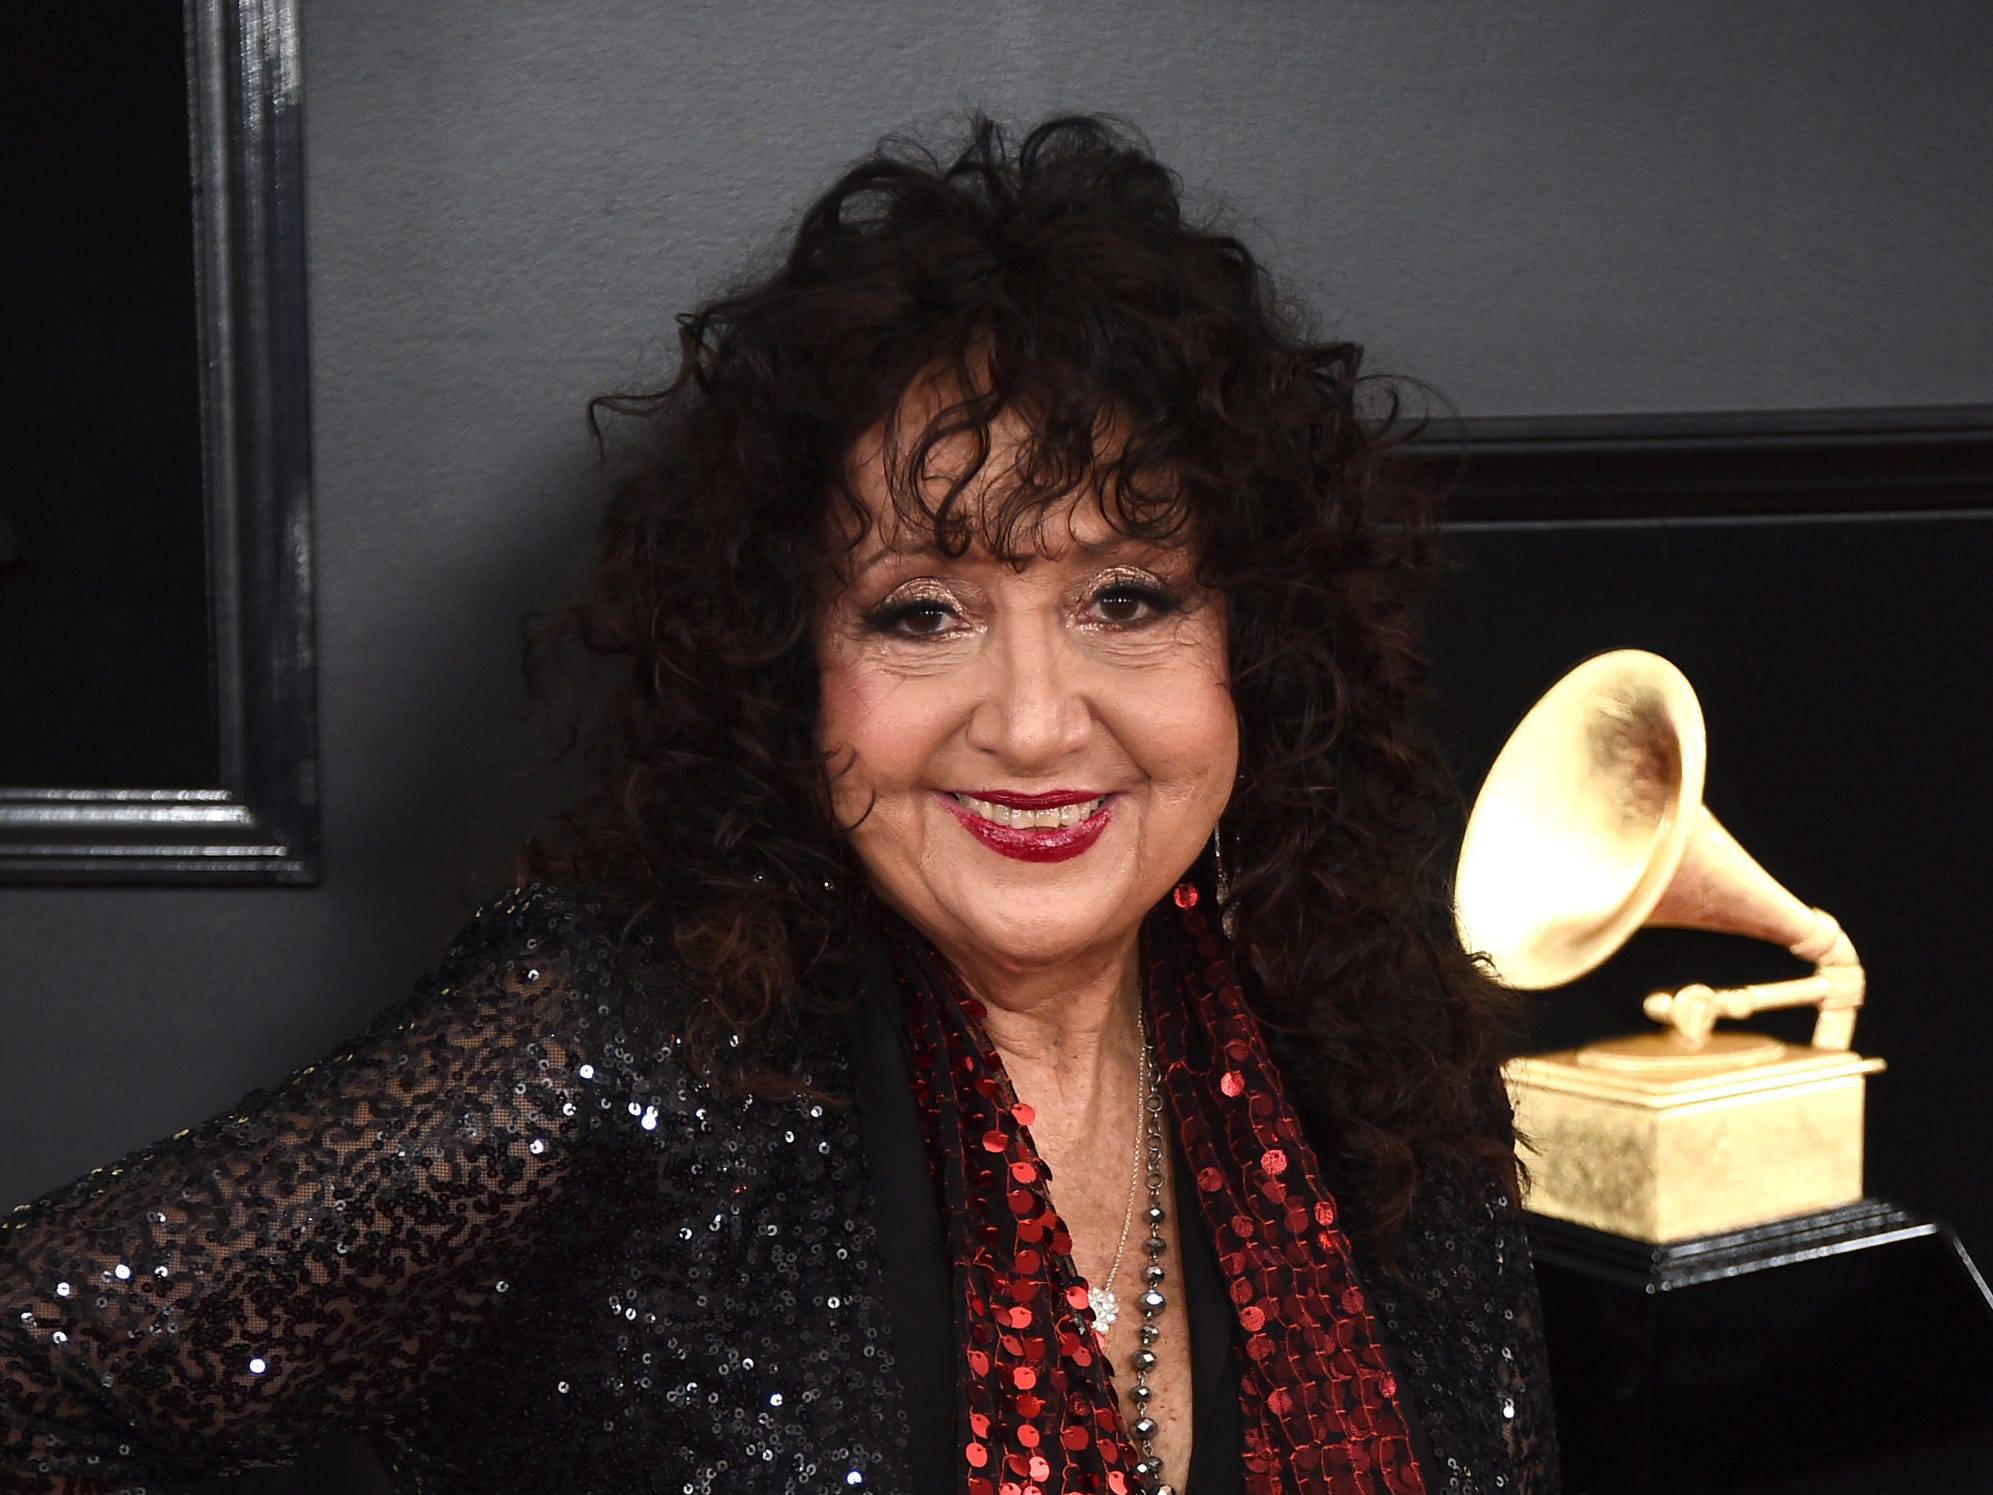 Maria Muldaur arrives at the 61st annual Grammy Awards at the Staples Center on Sunday, Feb. 10, 2019, in Los Angeles.